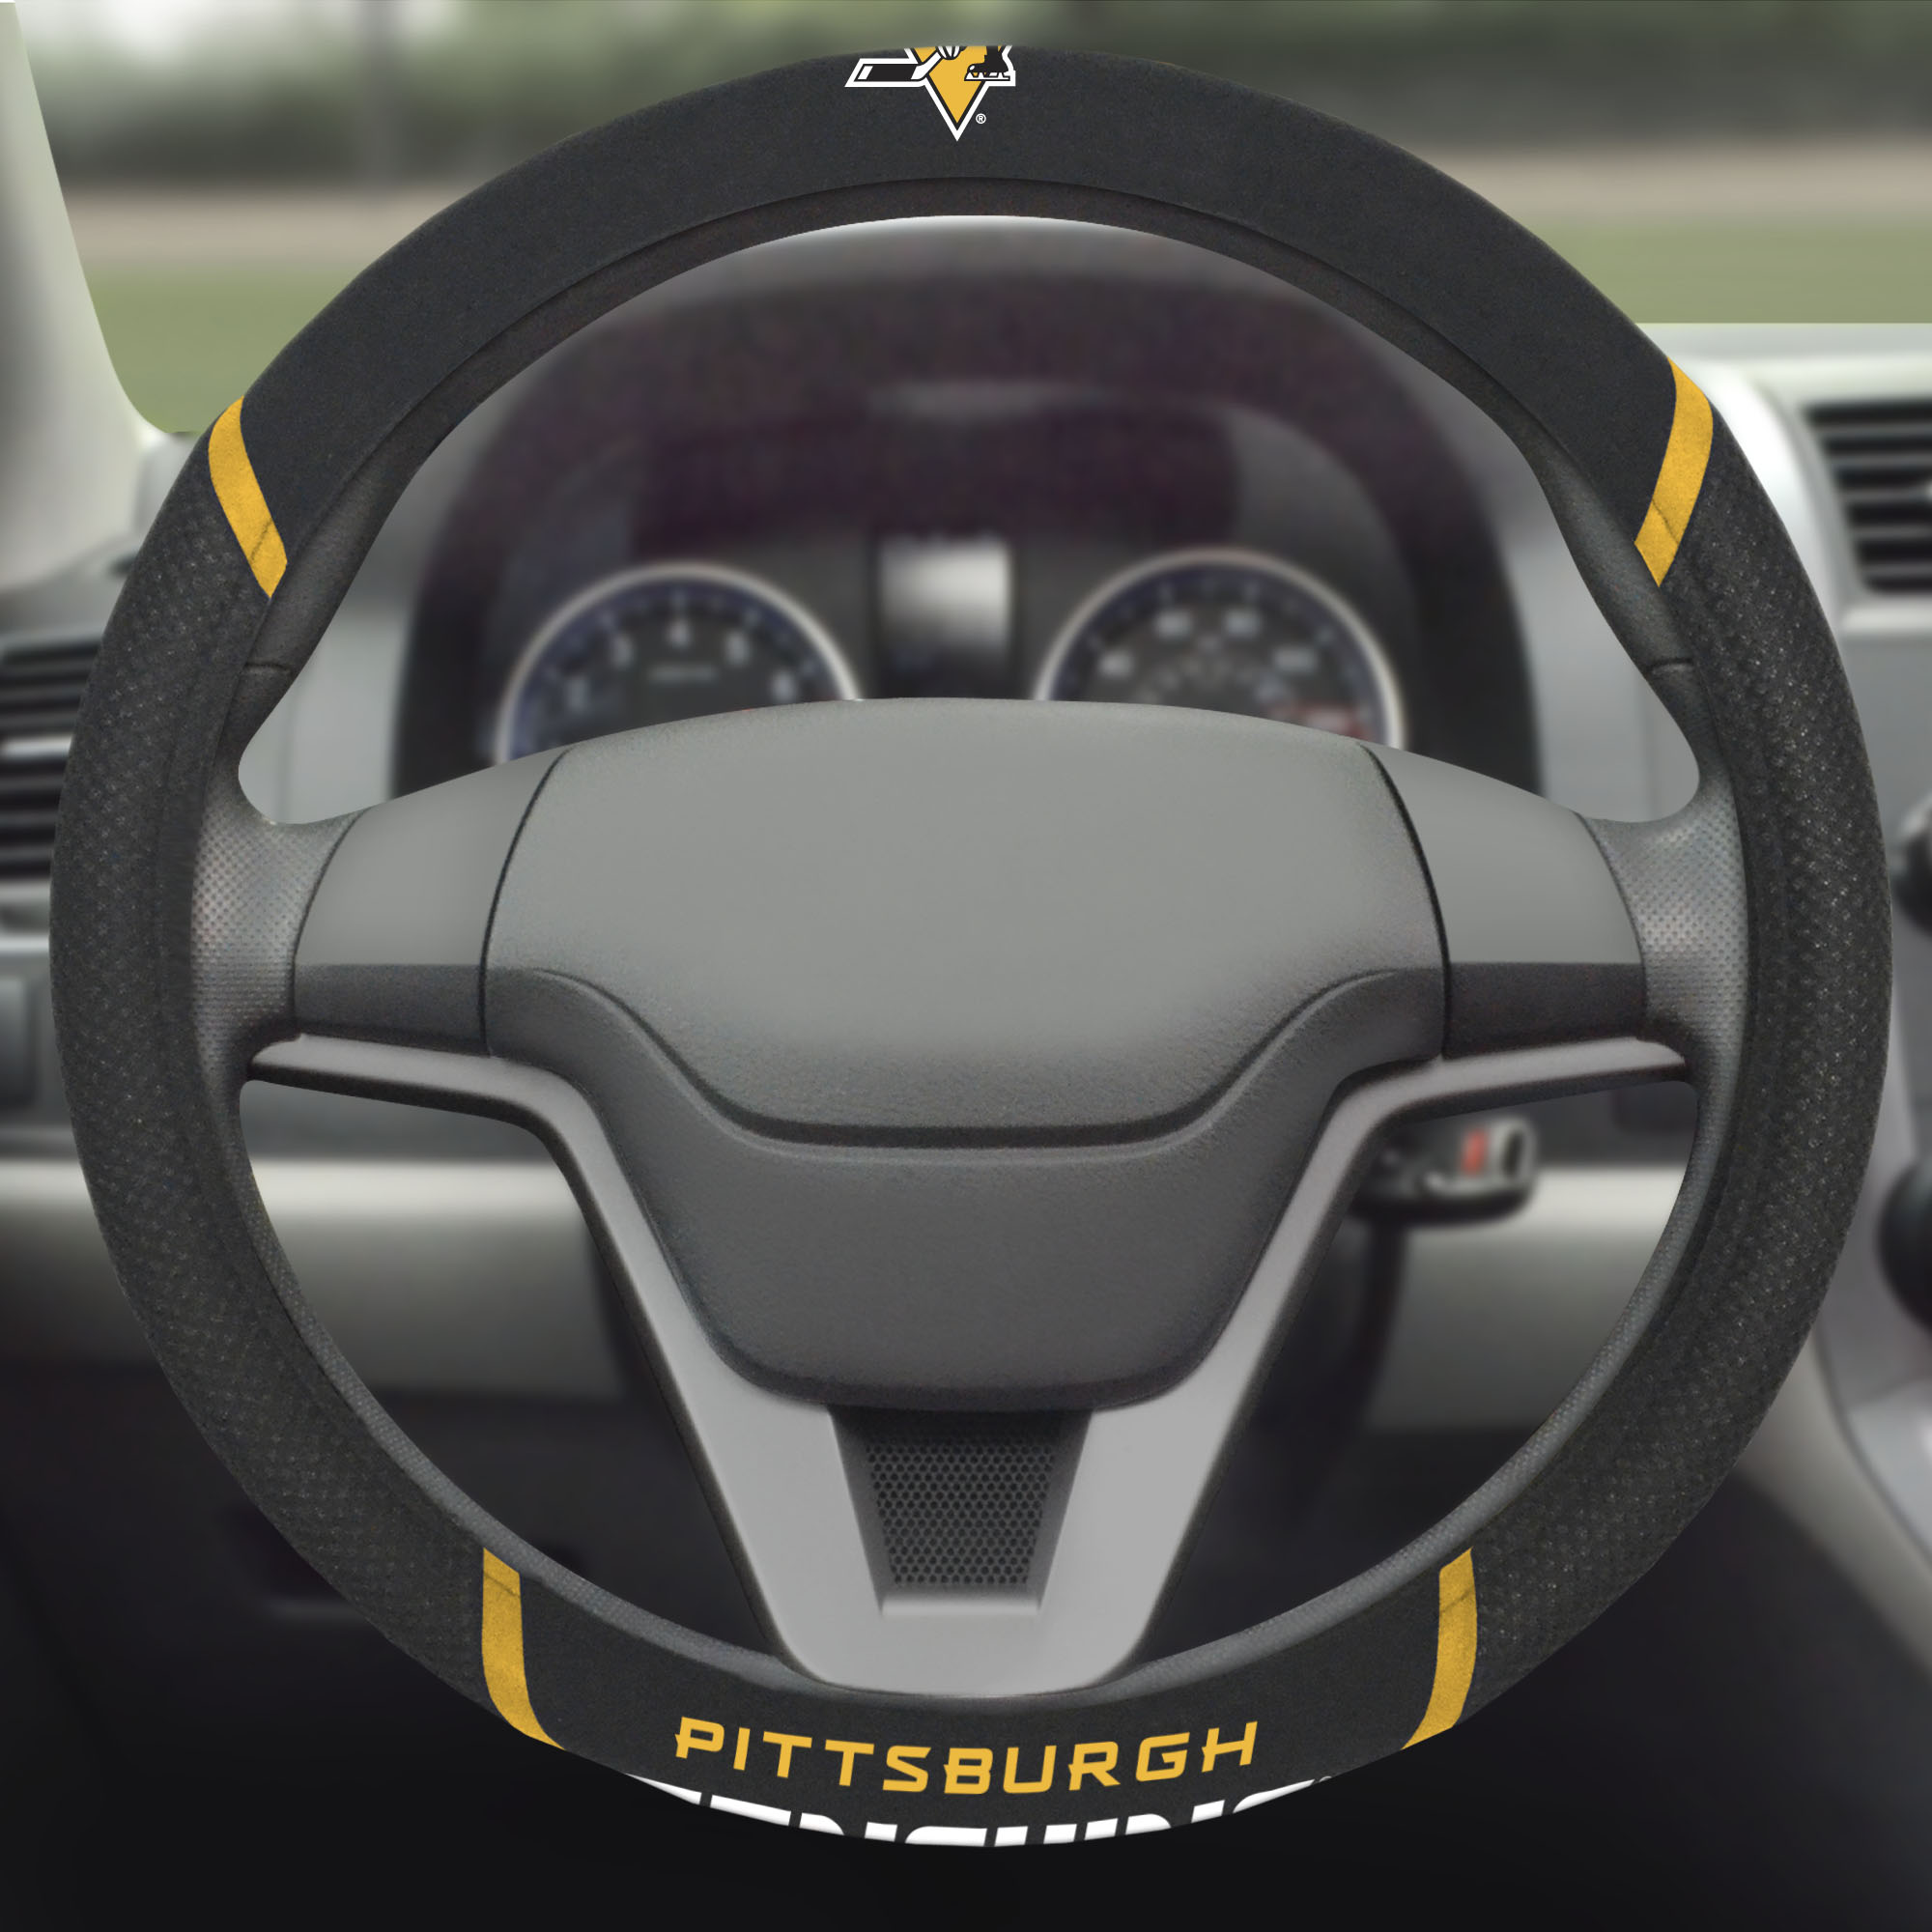 Pittsburgh Penguins Steering Wheel Cover - No Size